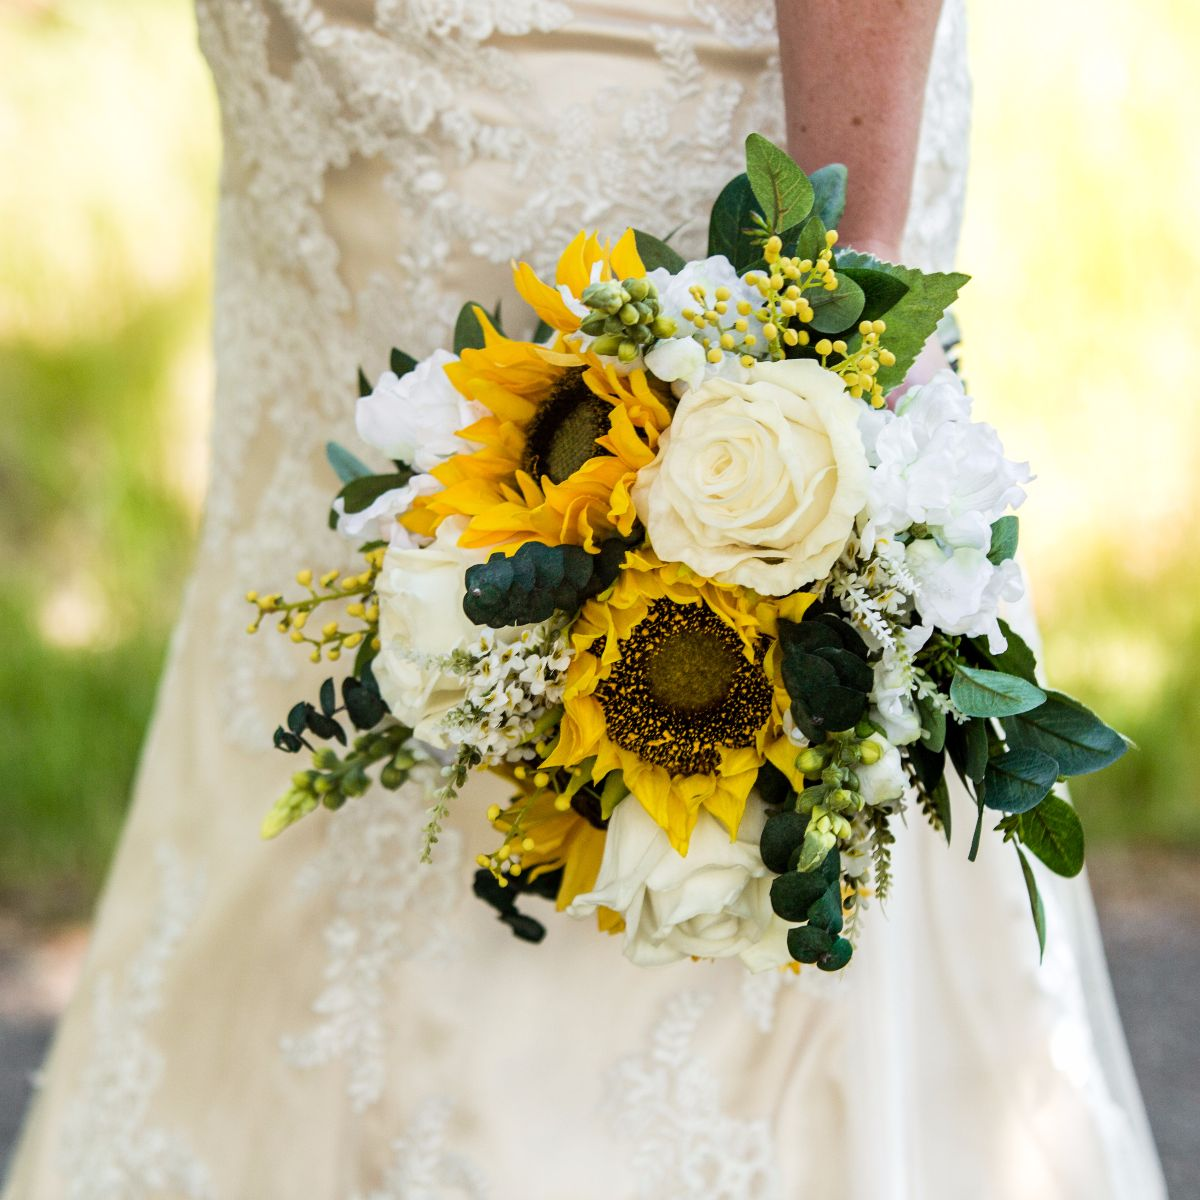 5 Crazy Reasons we Carry Flowers at Weddings